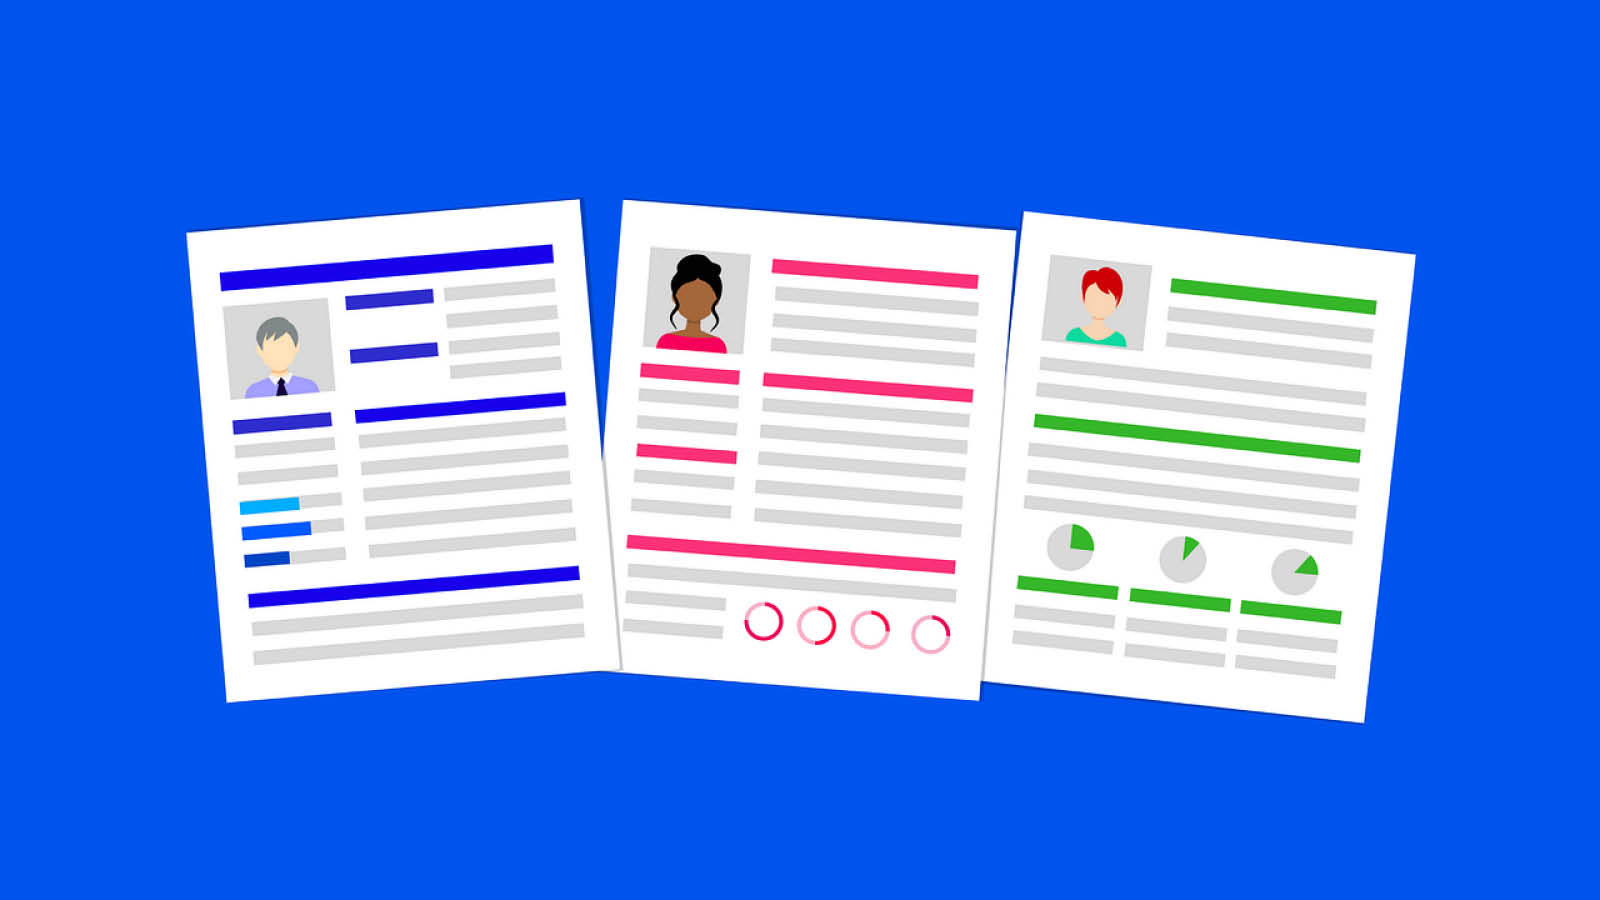 Image of three cartoon resumes on a bright blue background